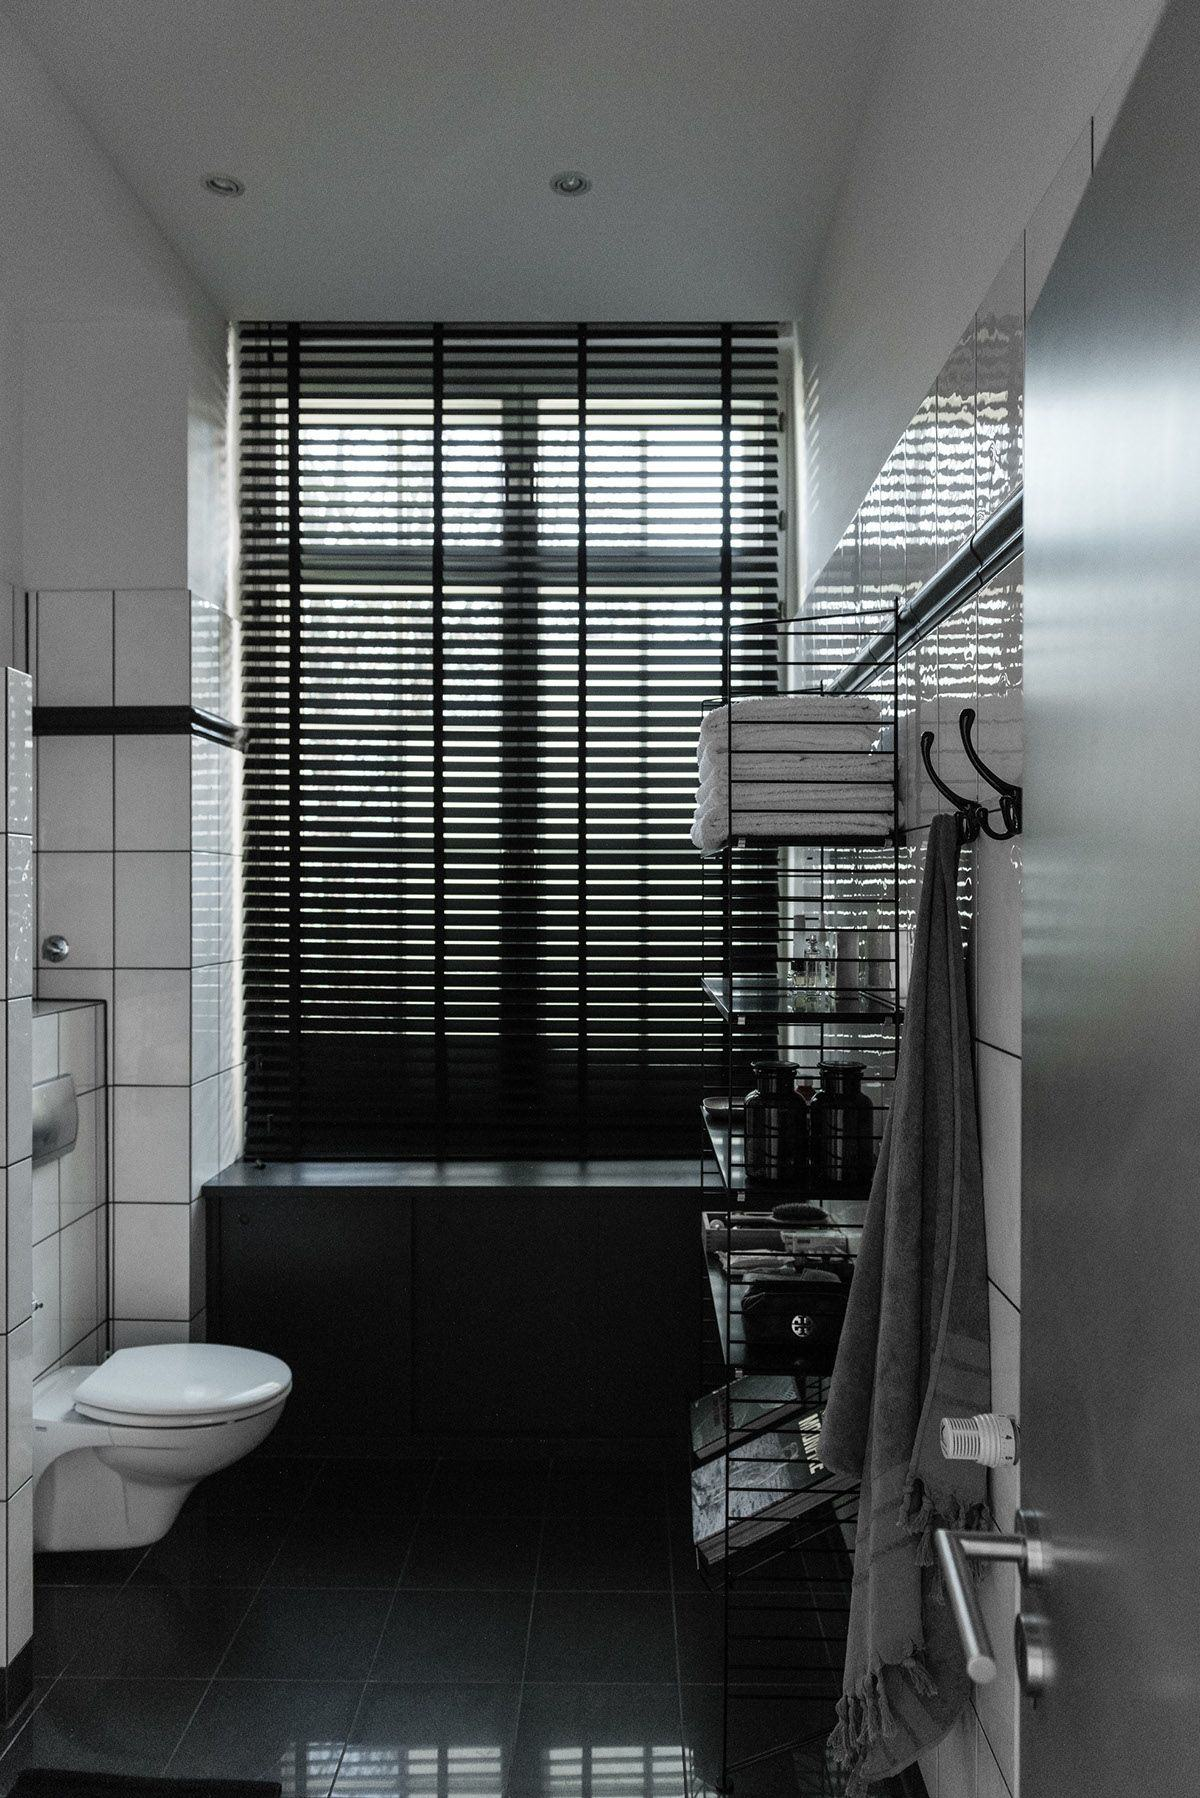 Grayscale Bathroom Inspiration - Stylish exposed brick wall lofts